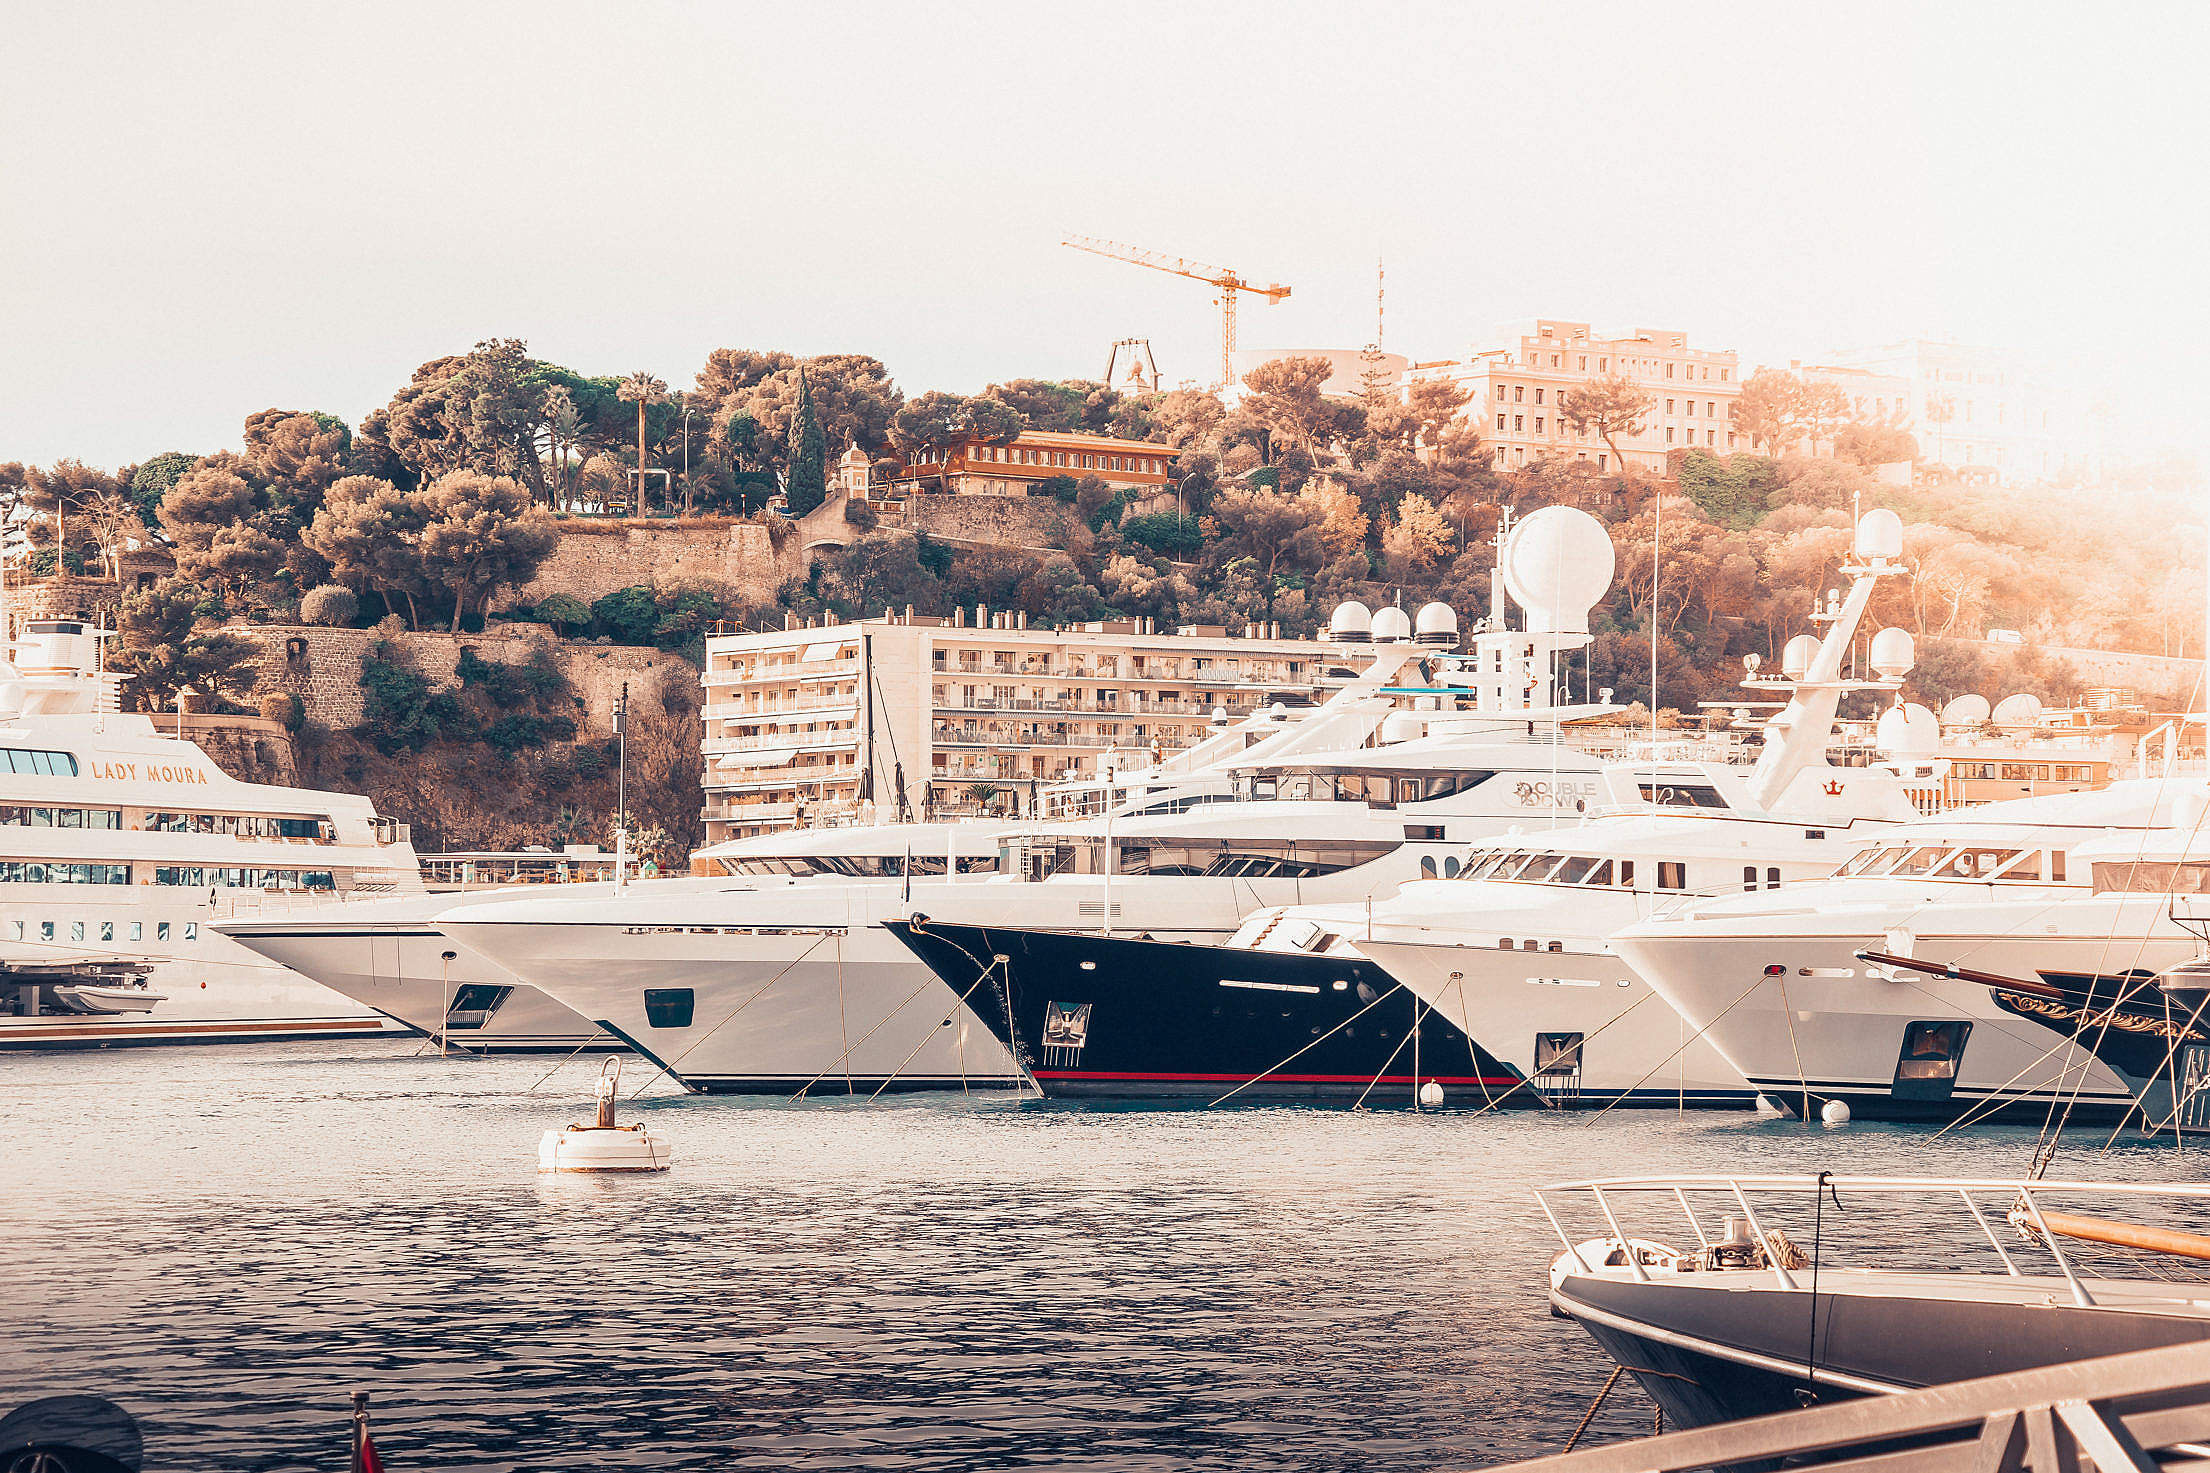 A Port with Yachts in Monaco Free Stock Photo